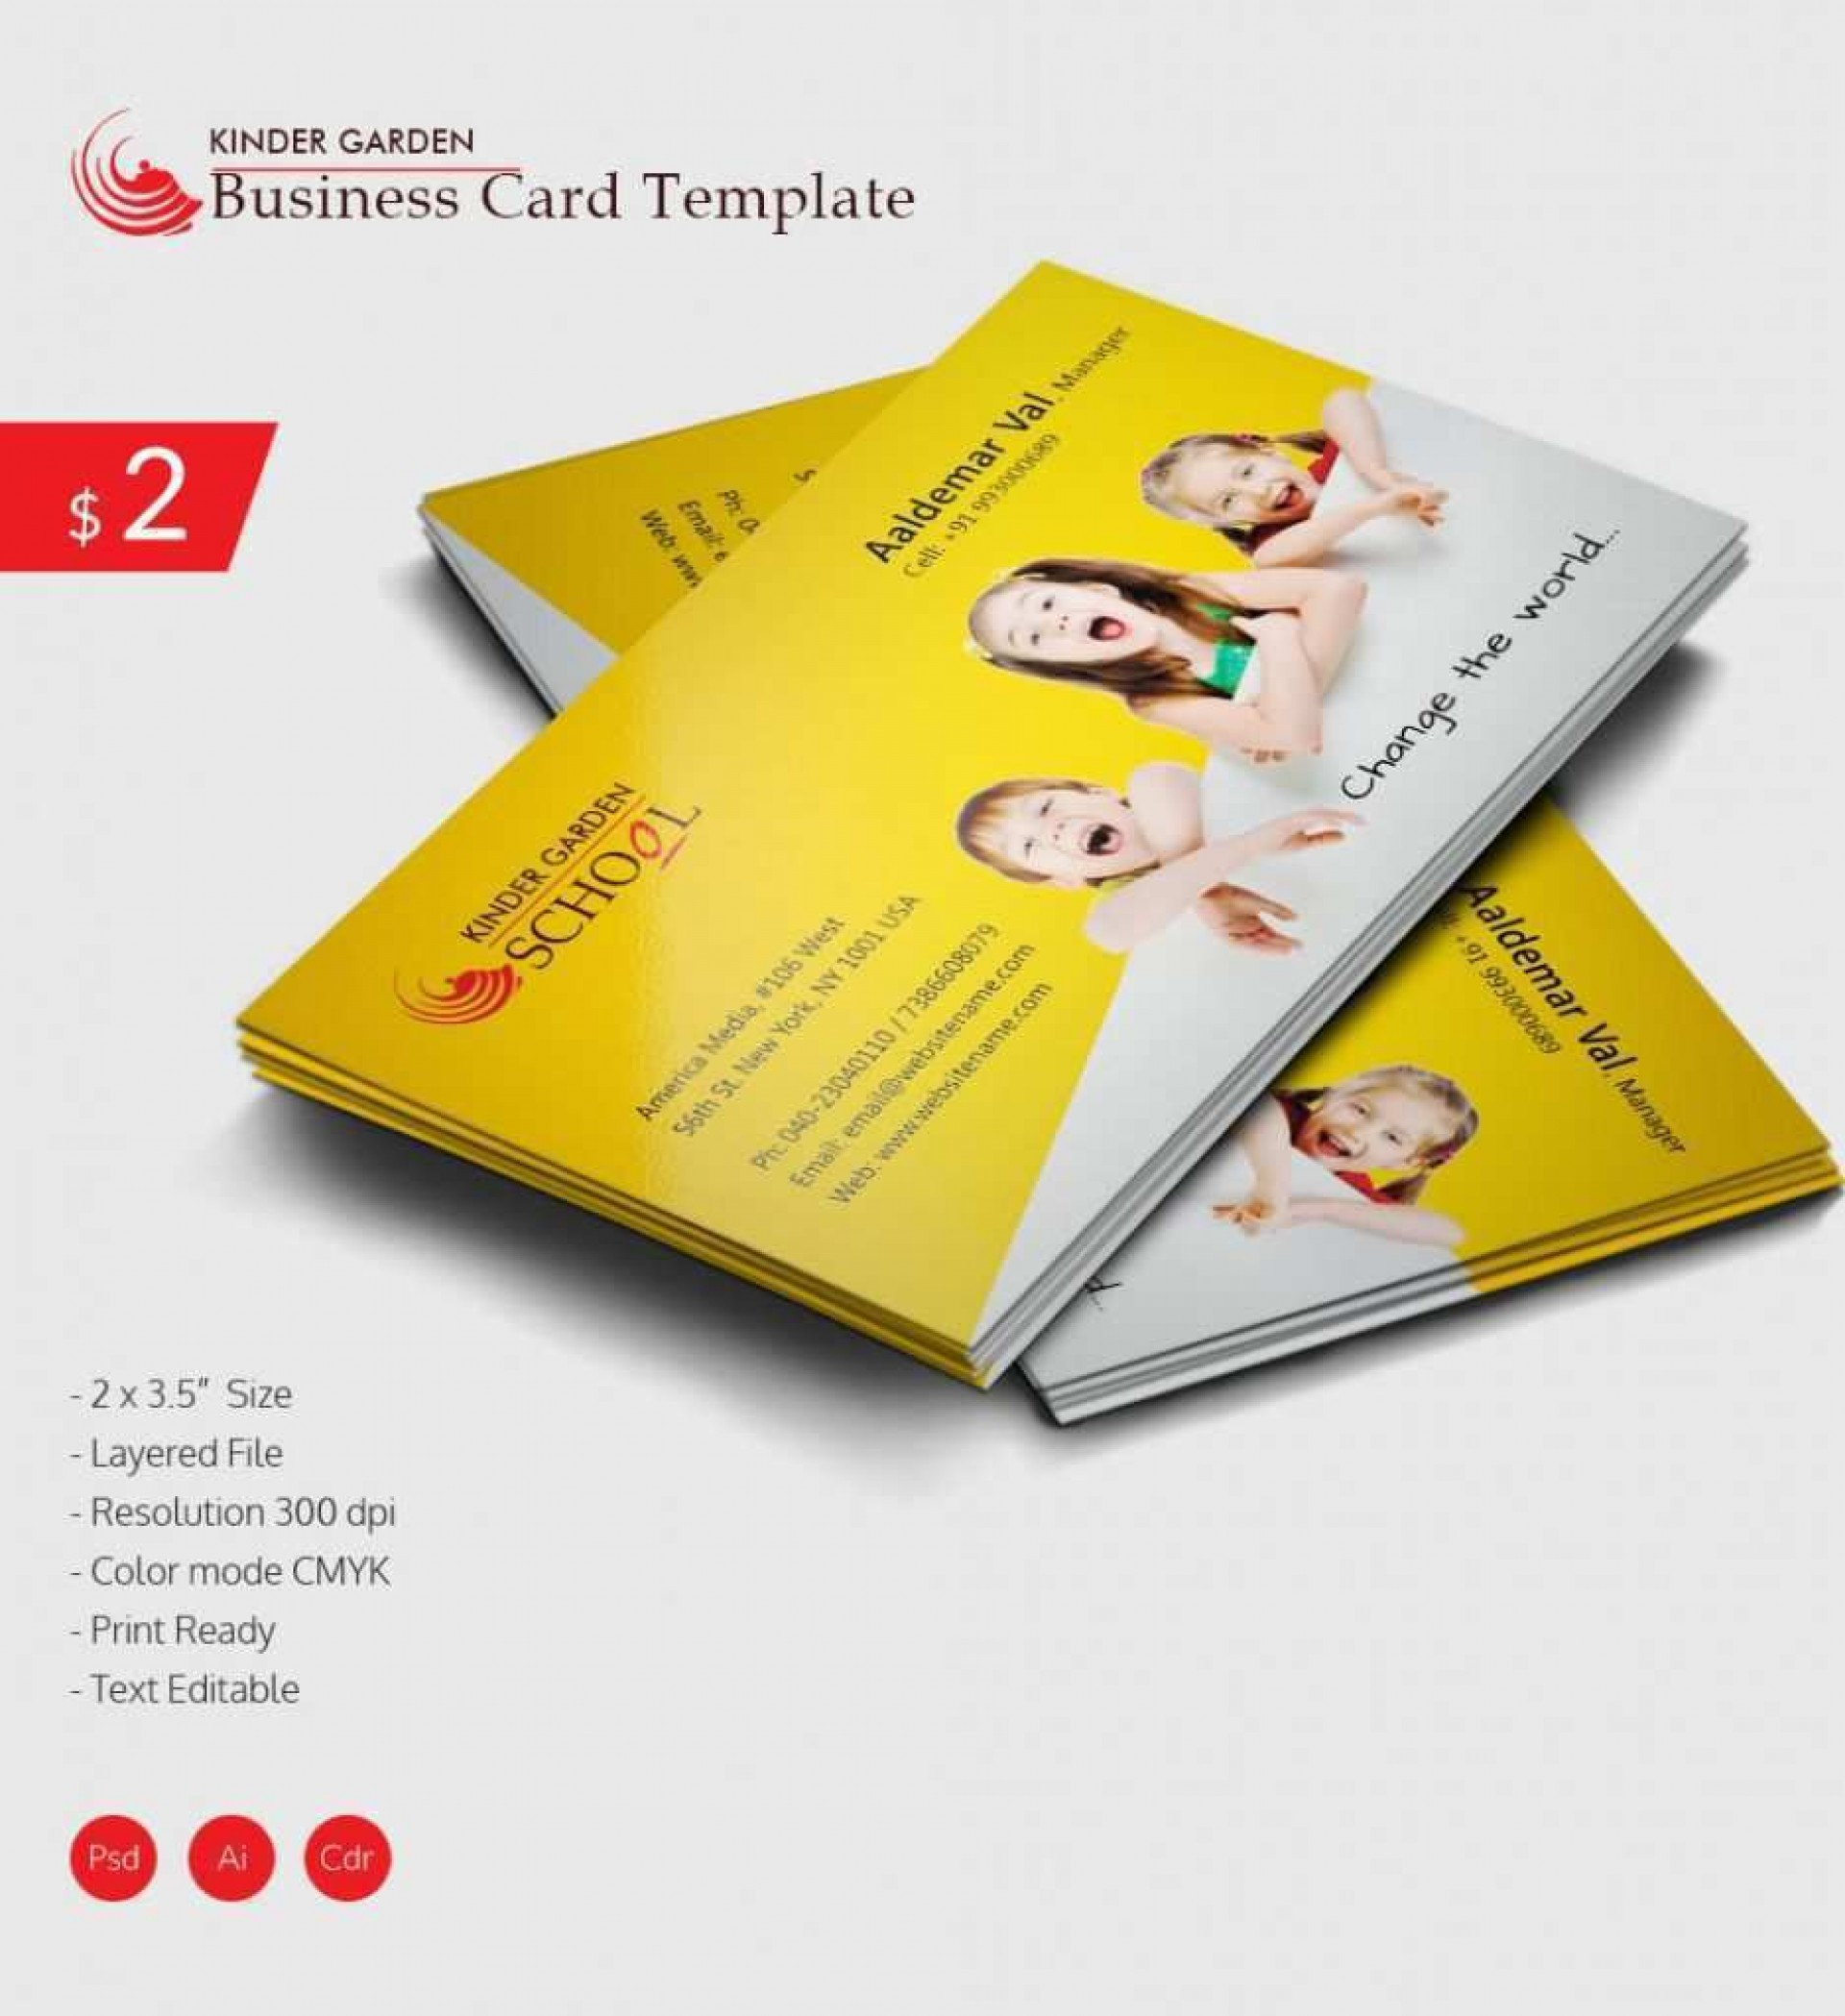 003 Amazing Blank Busines Card Template Psd Free Photo  Photoshop Download1920